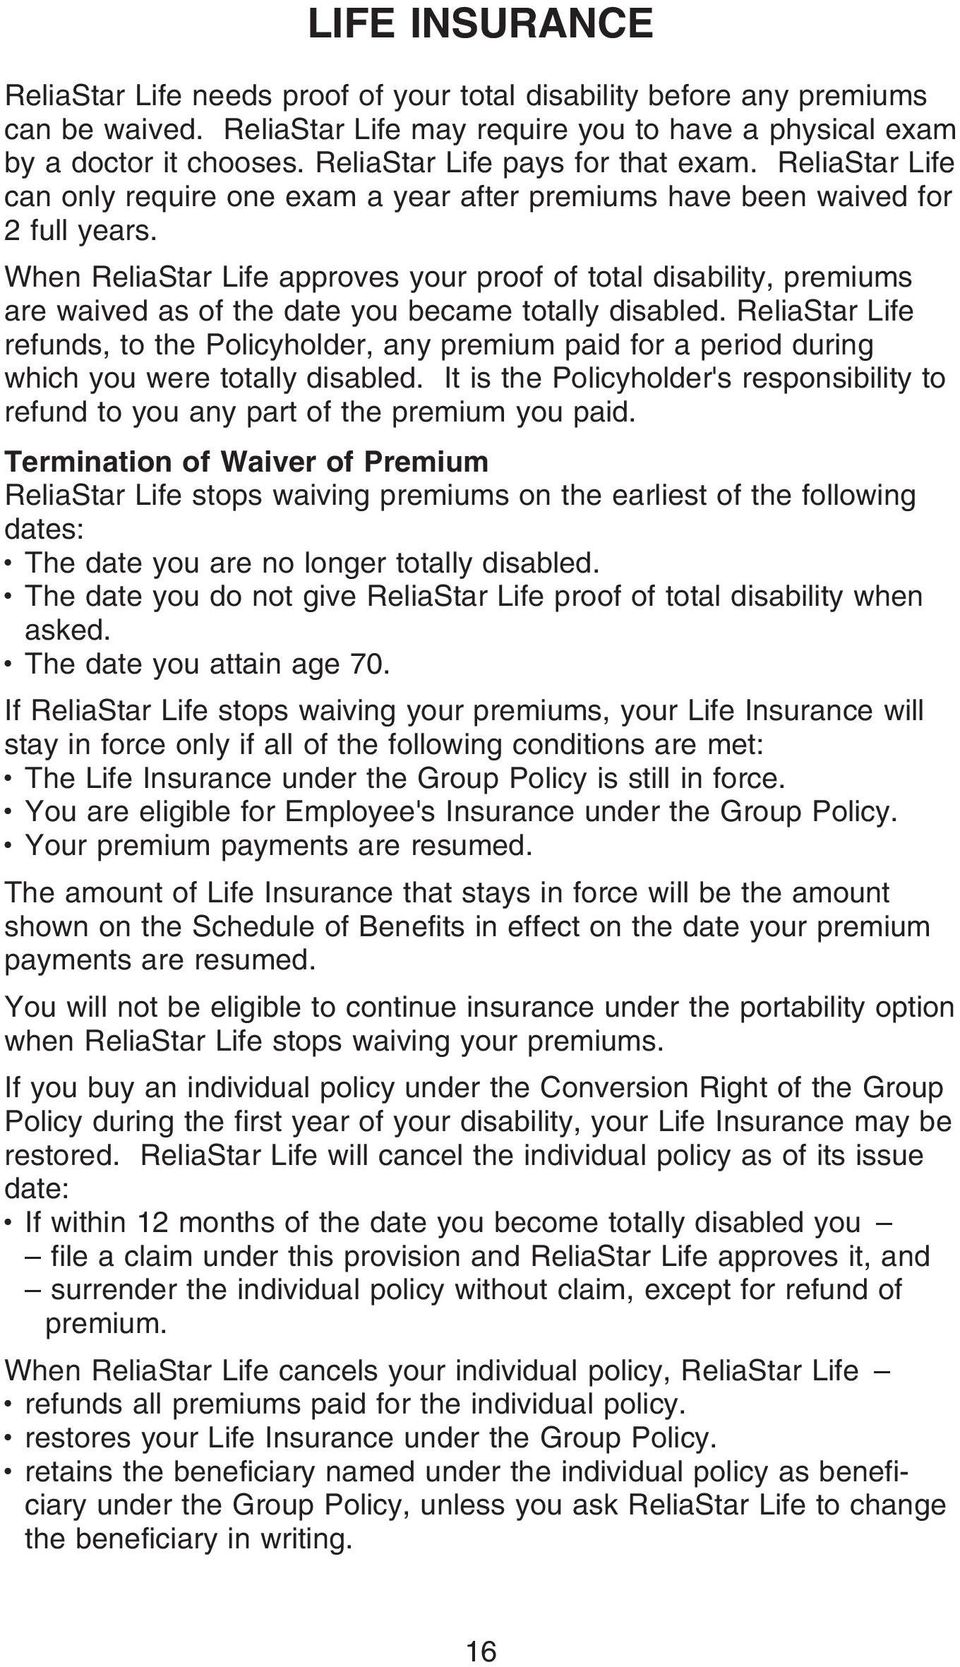 When ReliaStar Life approves your proof of total disability, premiums are waived as of the date you became totally disabled.